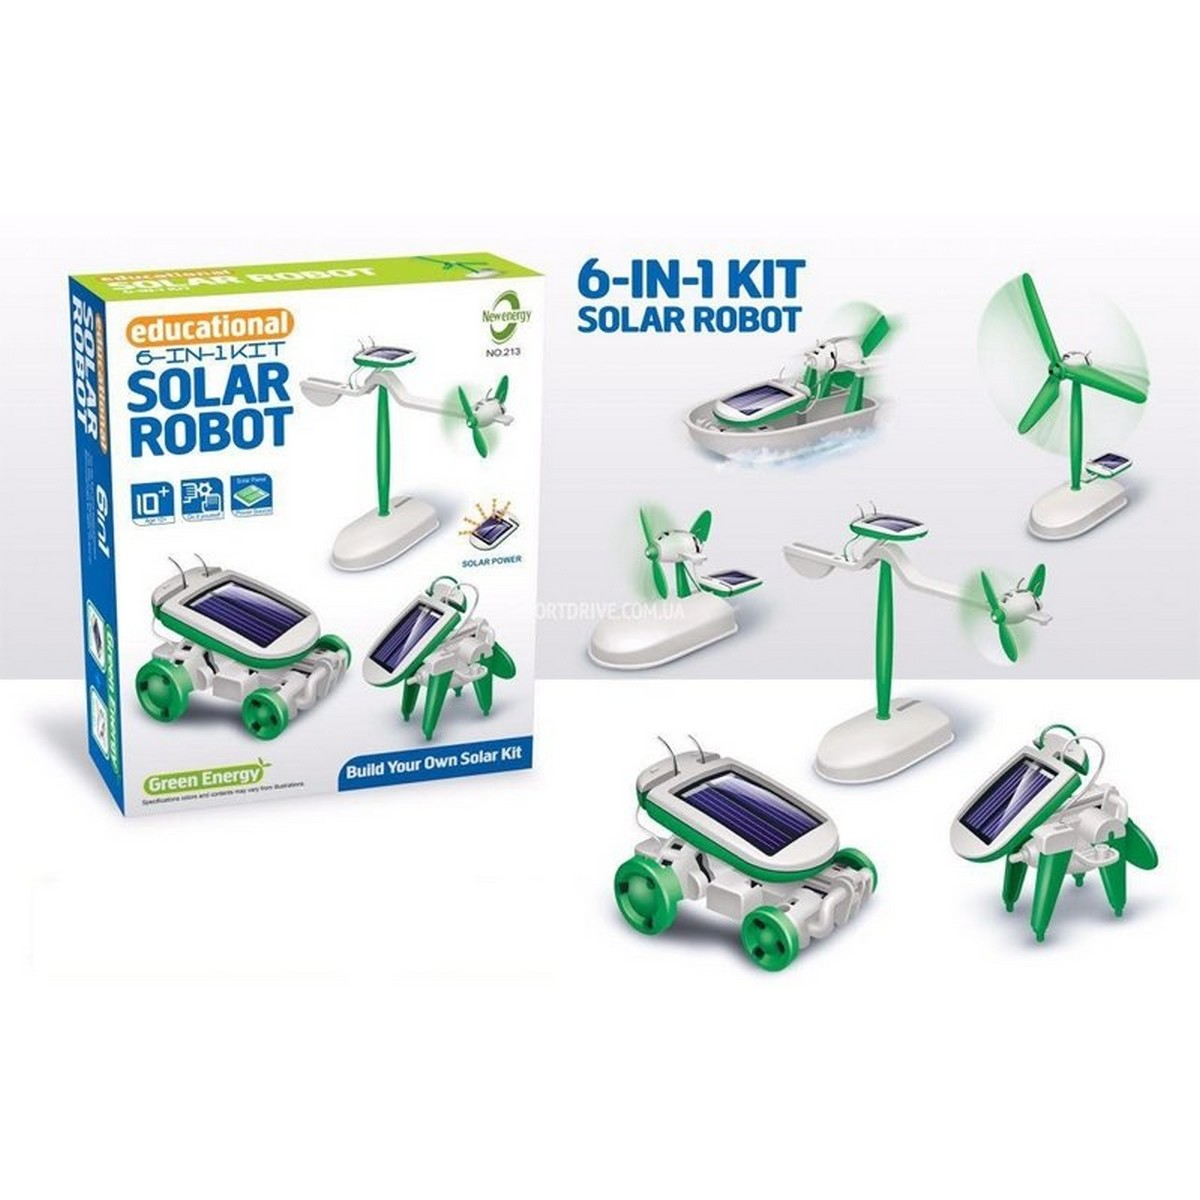 Solar Robot Toys 6 in 1 STEM Learning Kits Educational  Building Kit - Car - Plane - Puppy - Fan - Boat - Windmill - White & Green Experiment Toys DIY Solar Power Science Gift for Kids